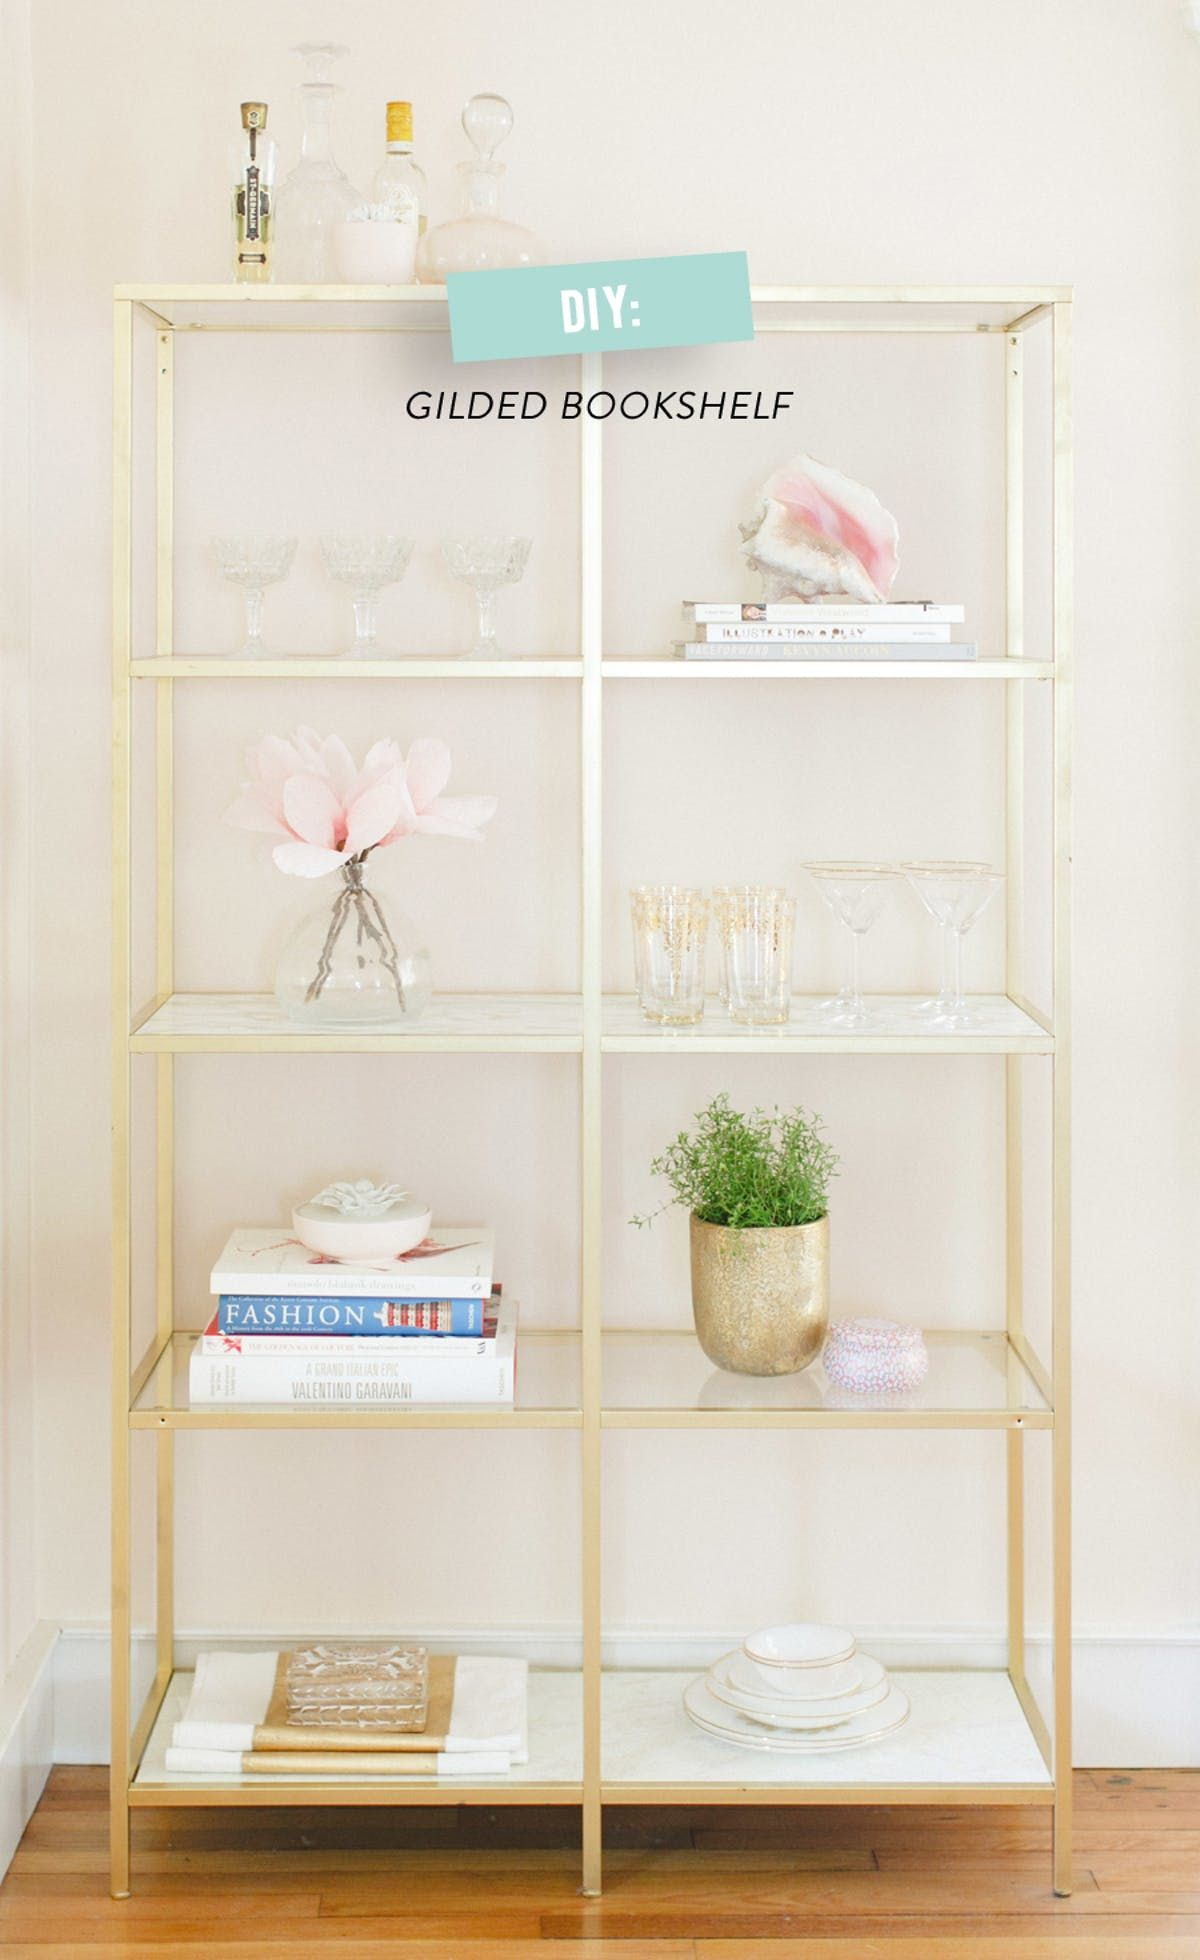 Ikea Hack Gold & Marble Shelves is part of Gold Home Accents Ikea Hacks - Ikea Hack Gold & Marble Shelves